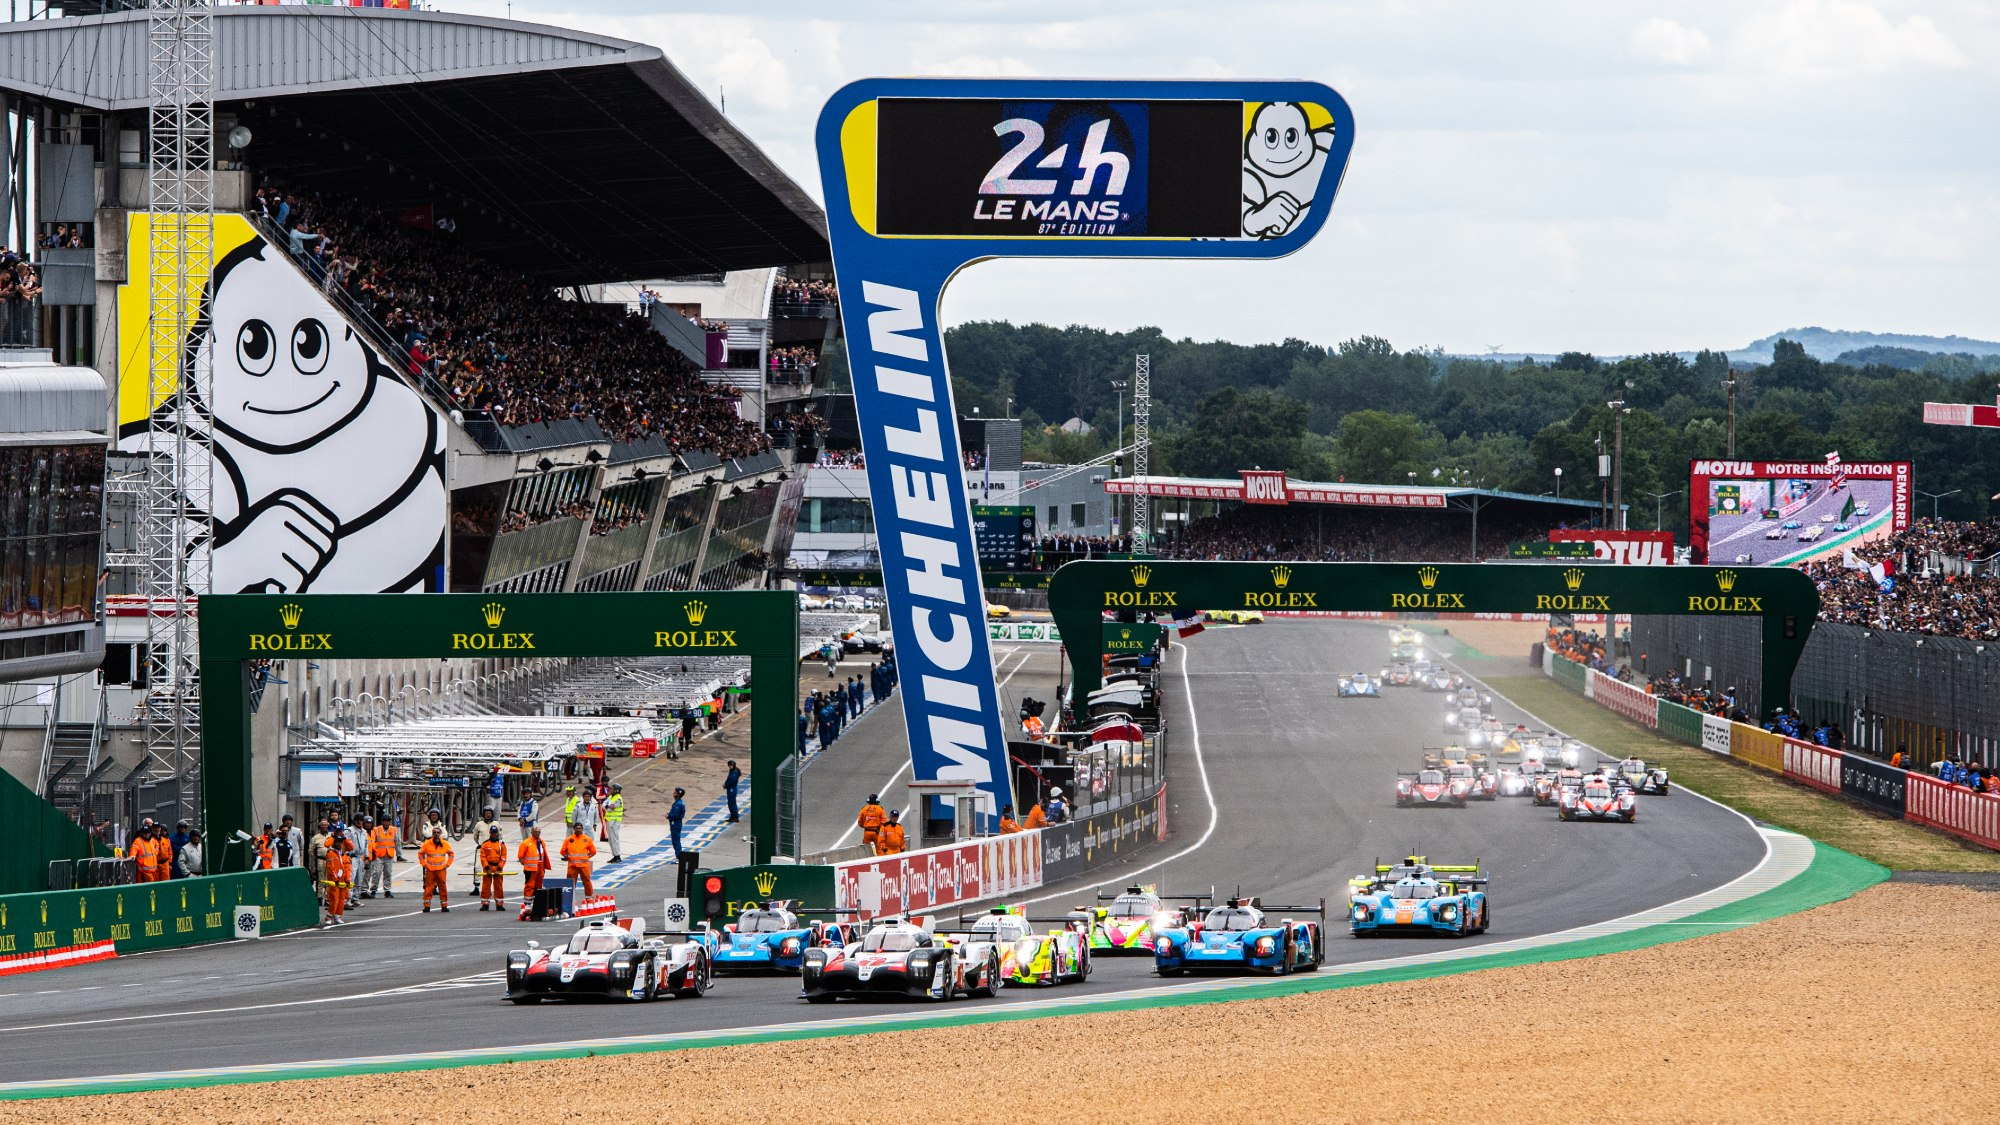 How and where to watch the 2020 Le Mans 24 Hours